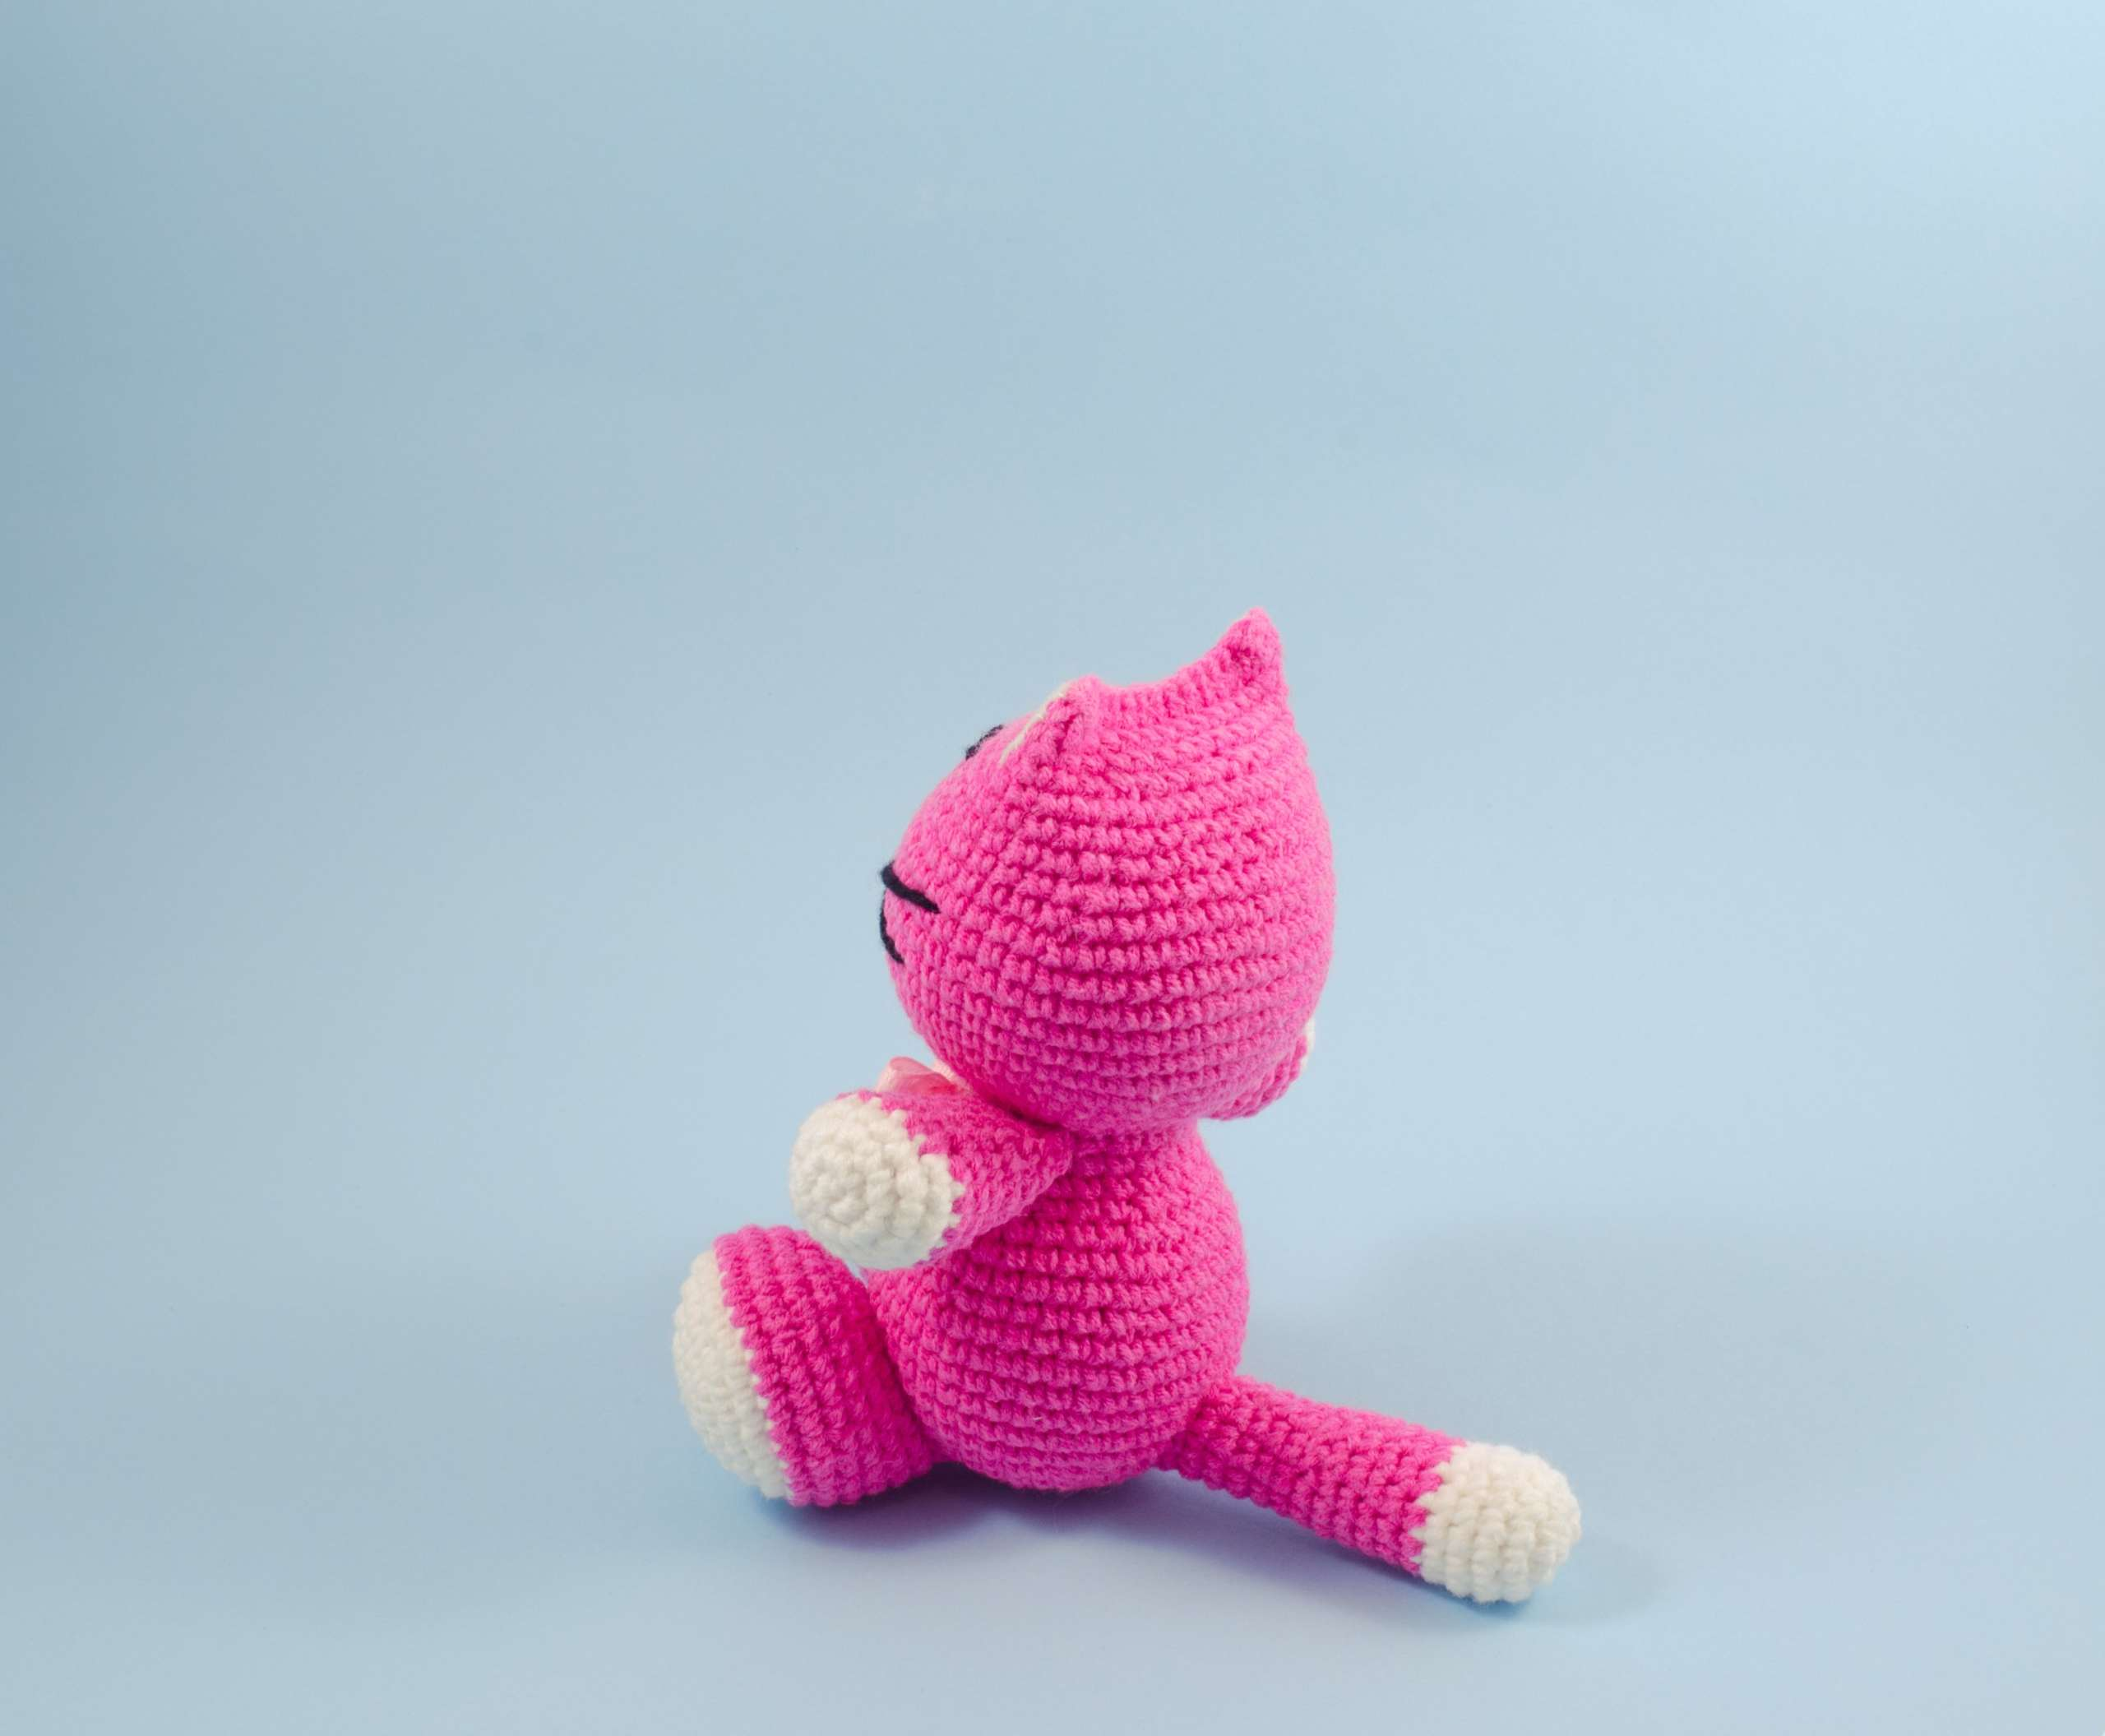 crochet pink cat side view